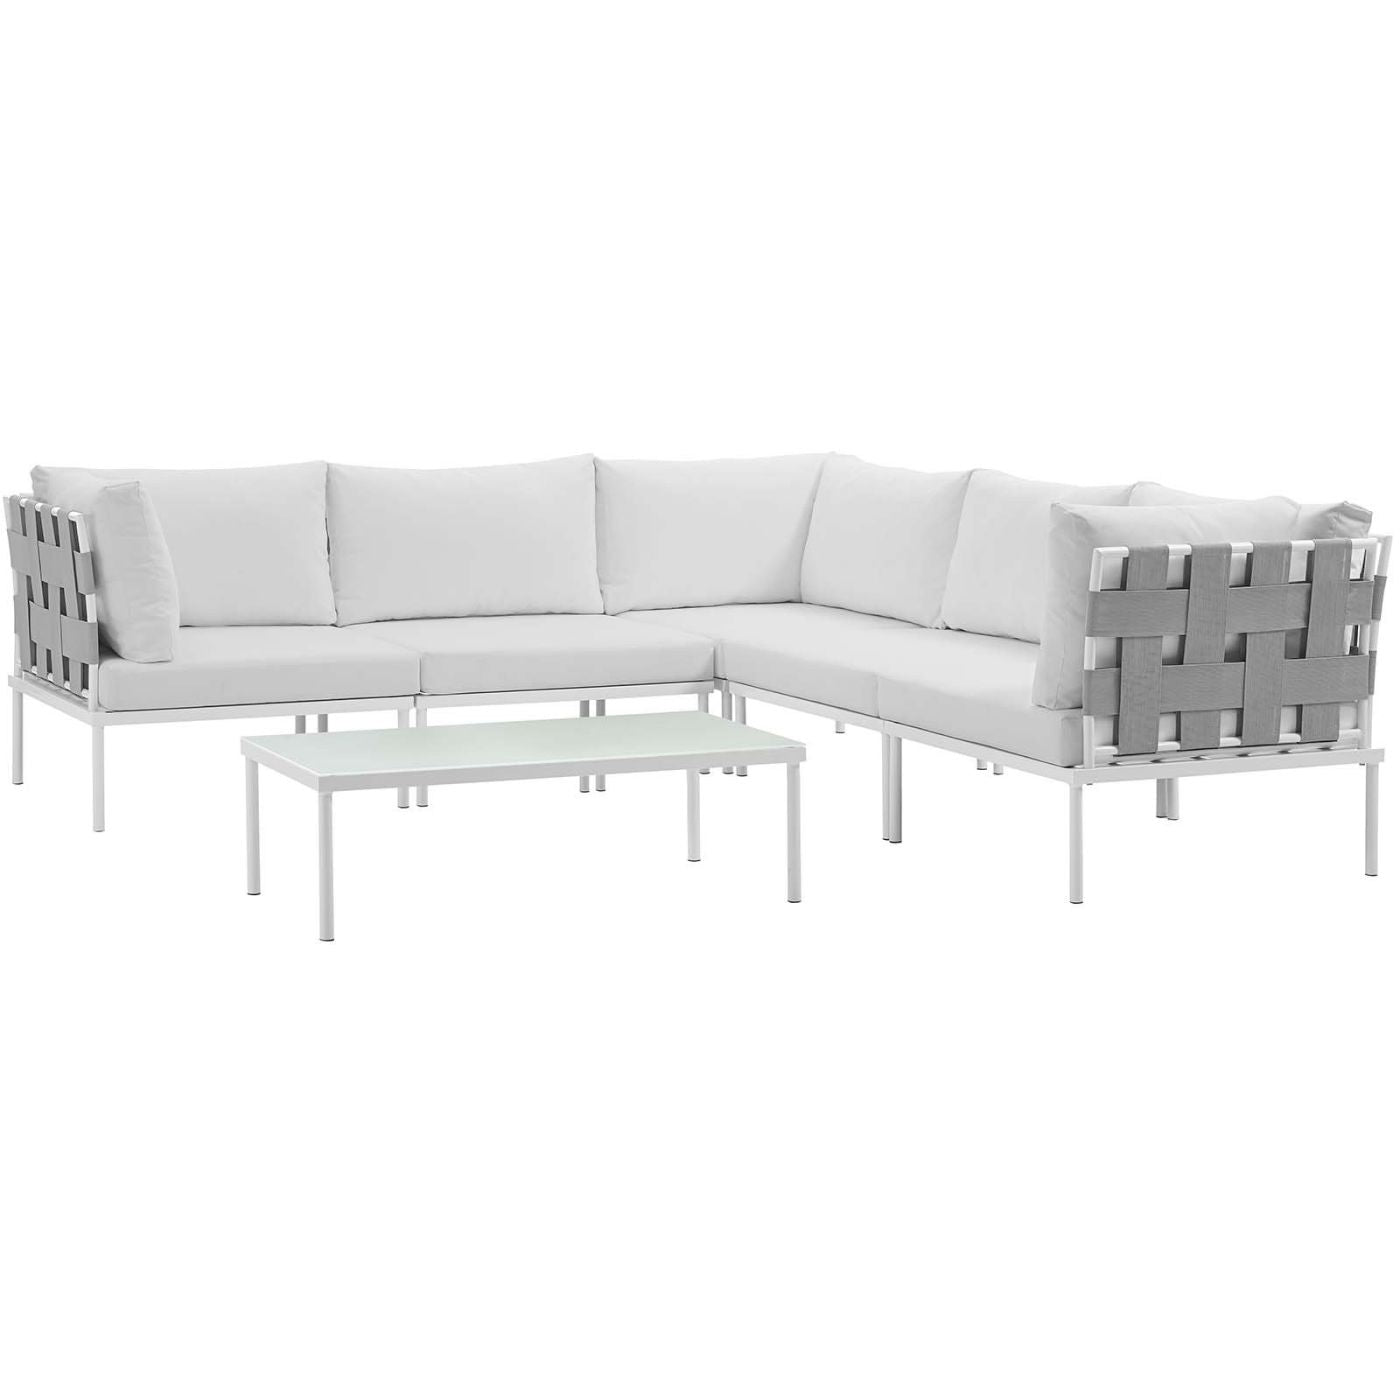 Harmony 6 Piece Outdoor Patio Aluminum Sectional Sofa Set White ...